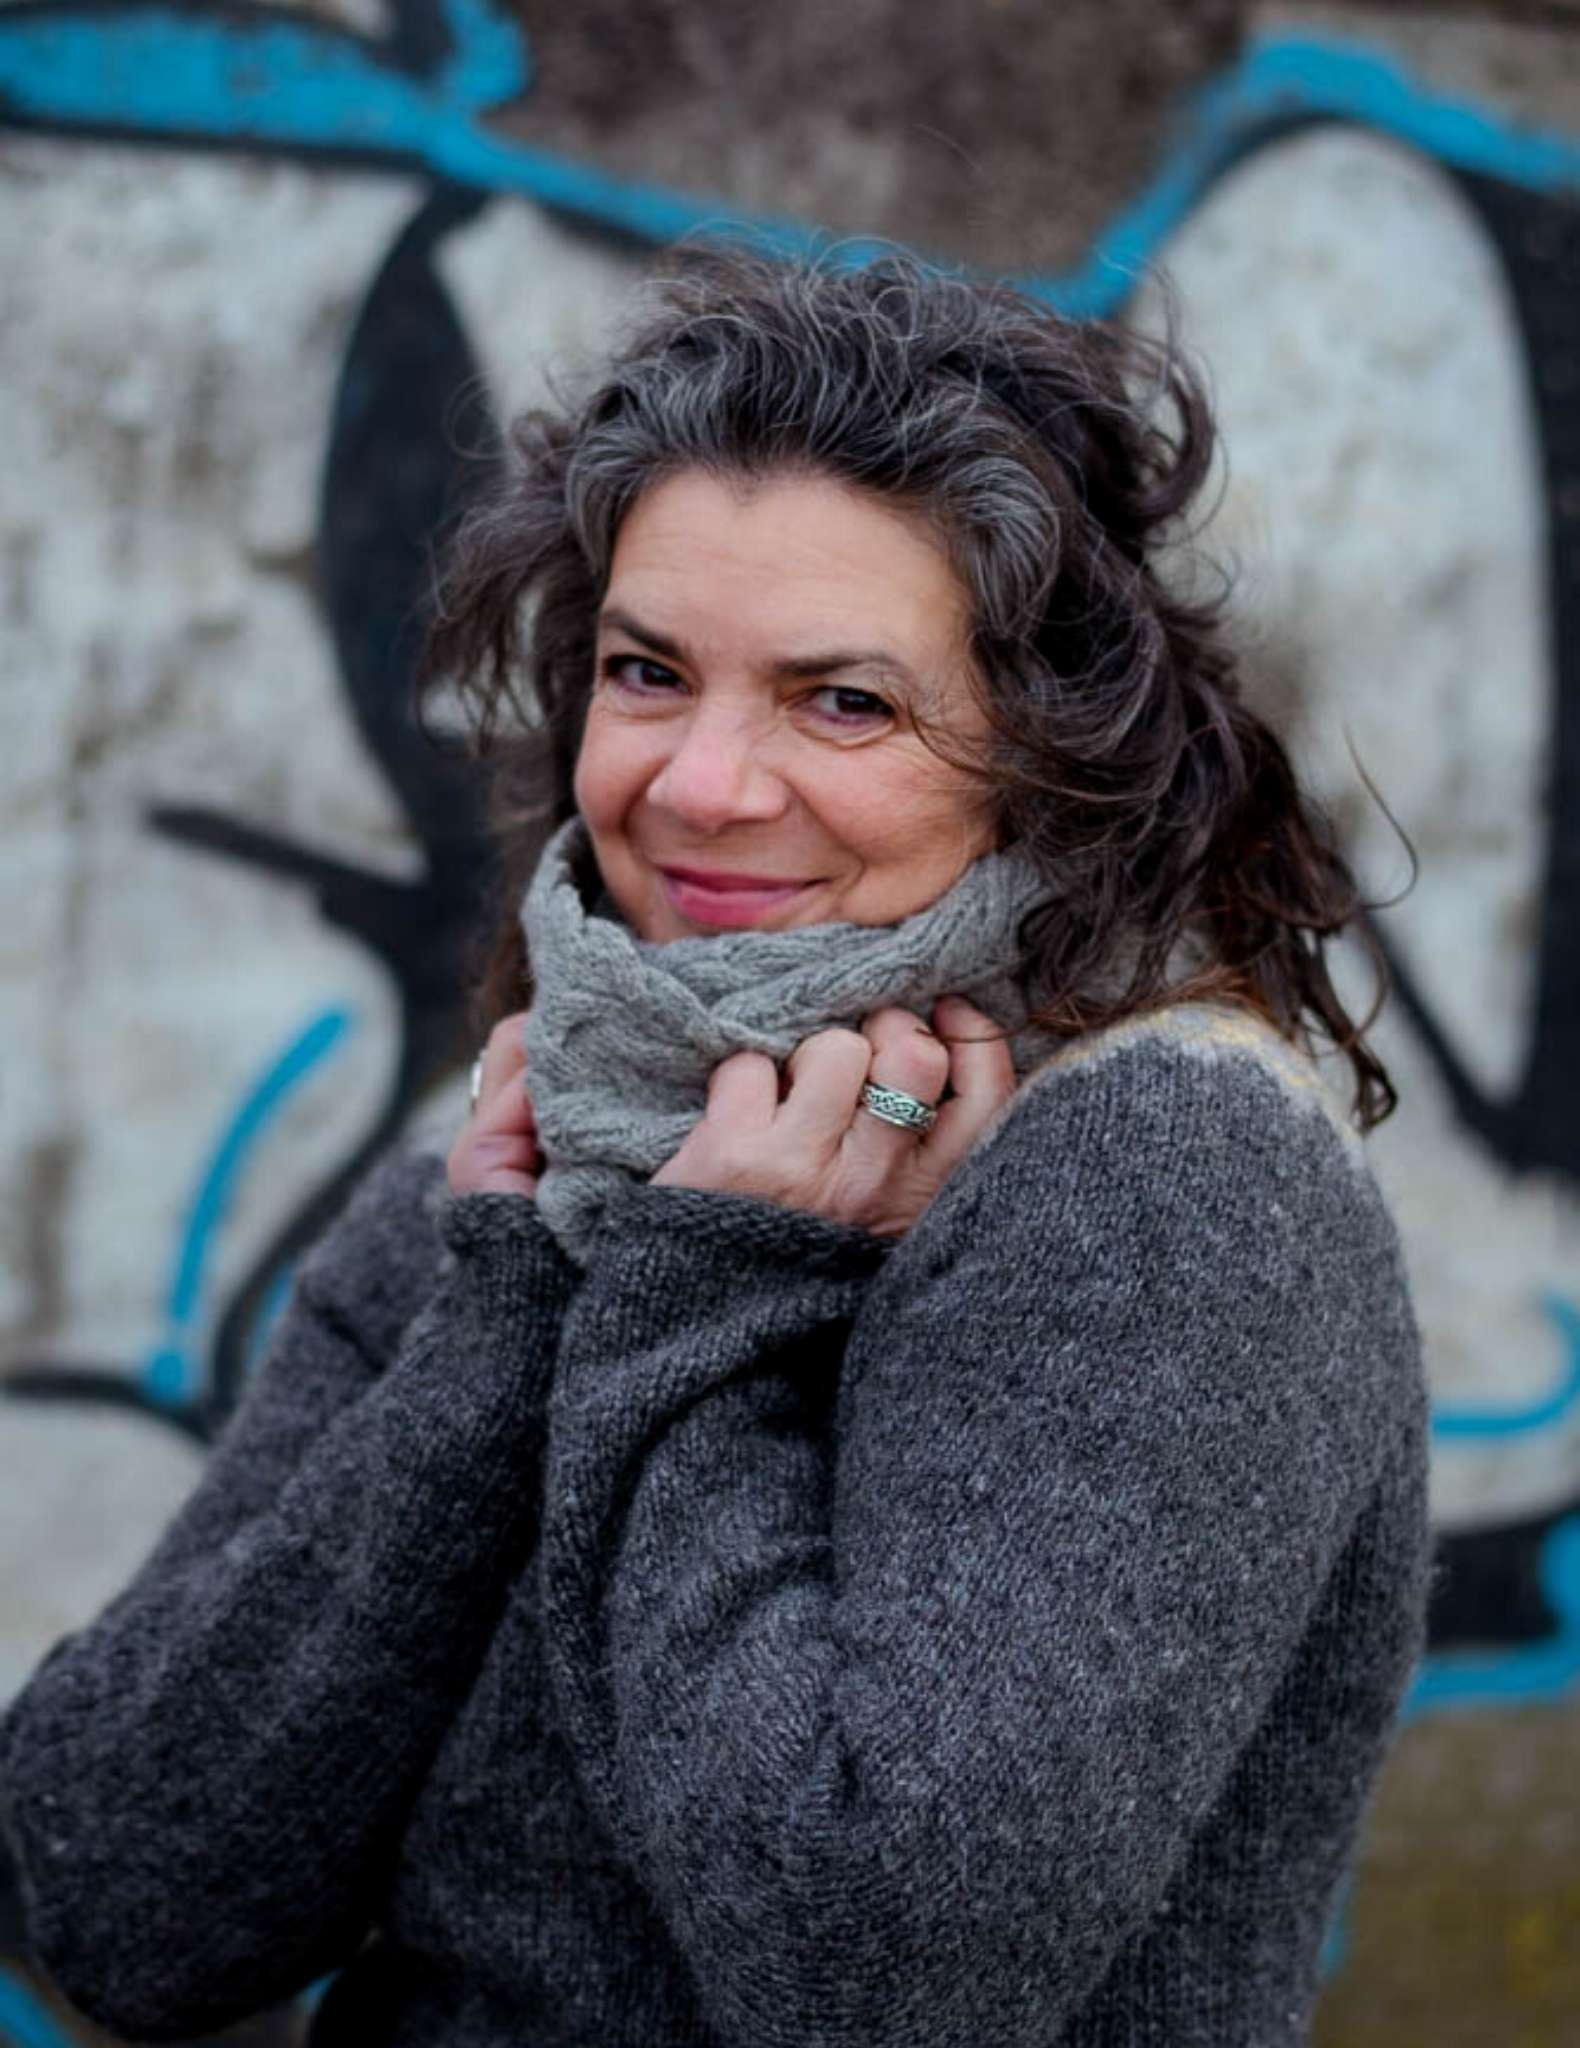 a white woman in her 50s with dark curly hair wears a grey sweater and pale grey cowl. Their hands are held up to the cowl and they are smiling.